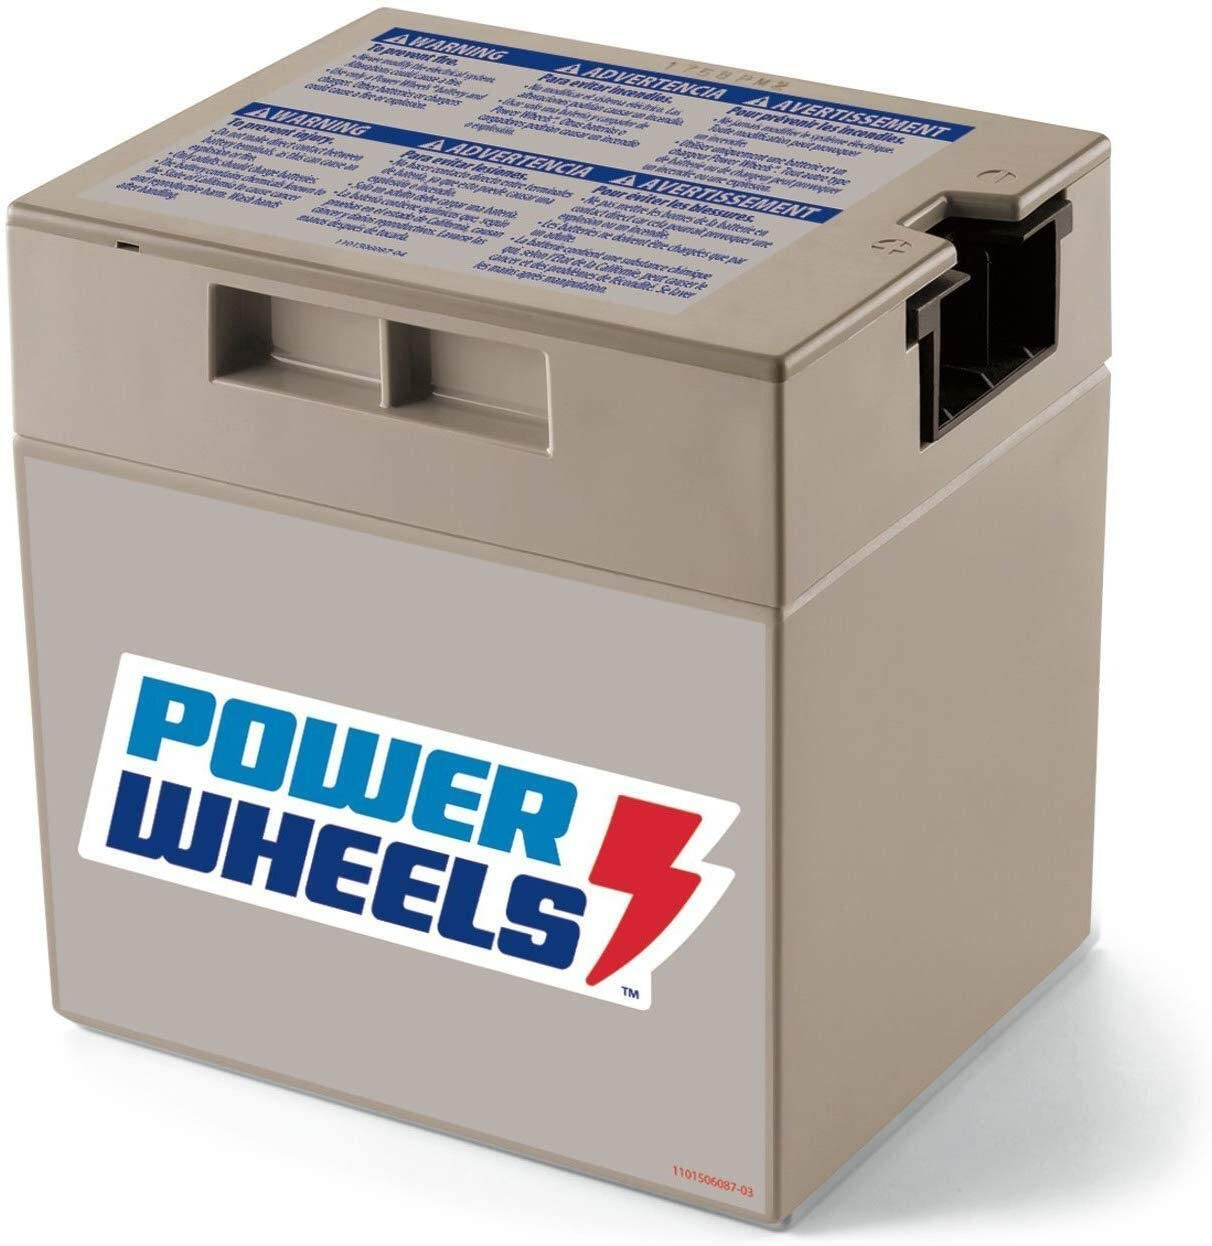 12 Volt Power Wheels Gray rechargeable Replacement Battery